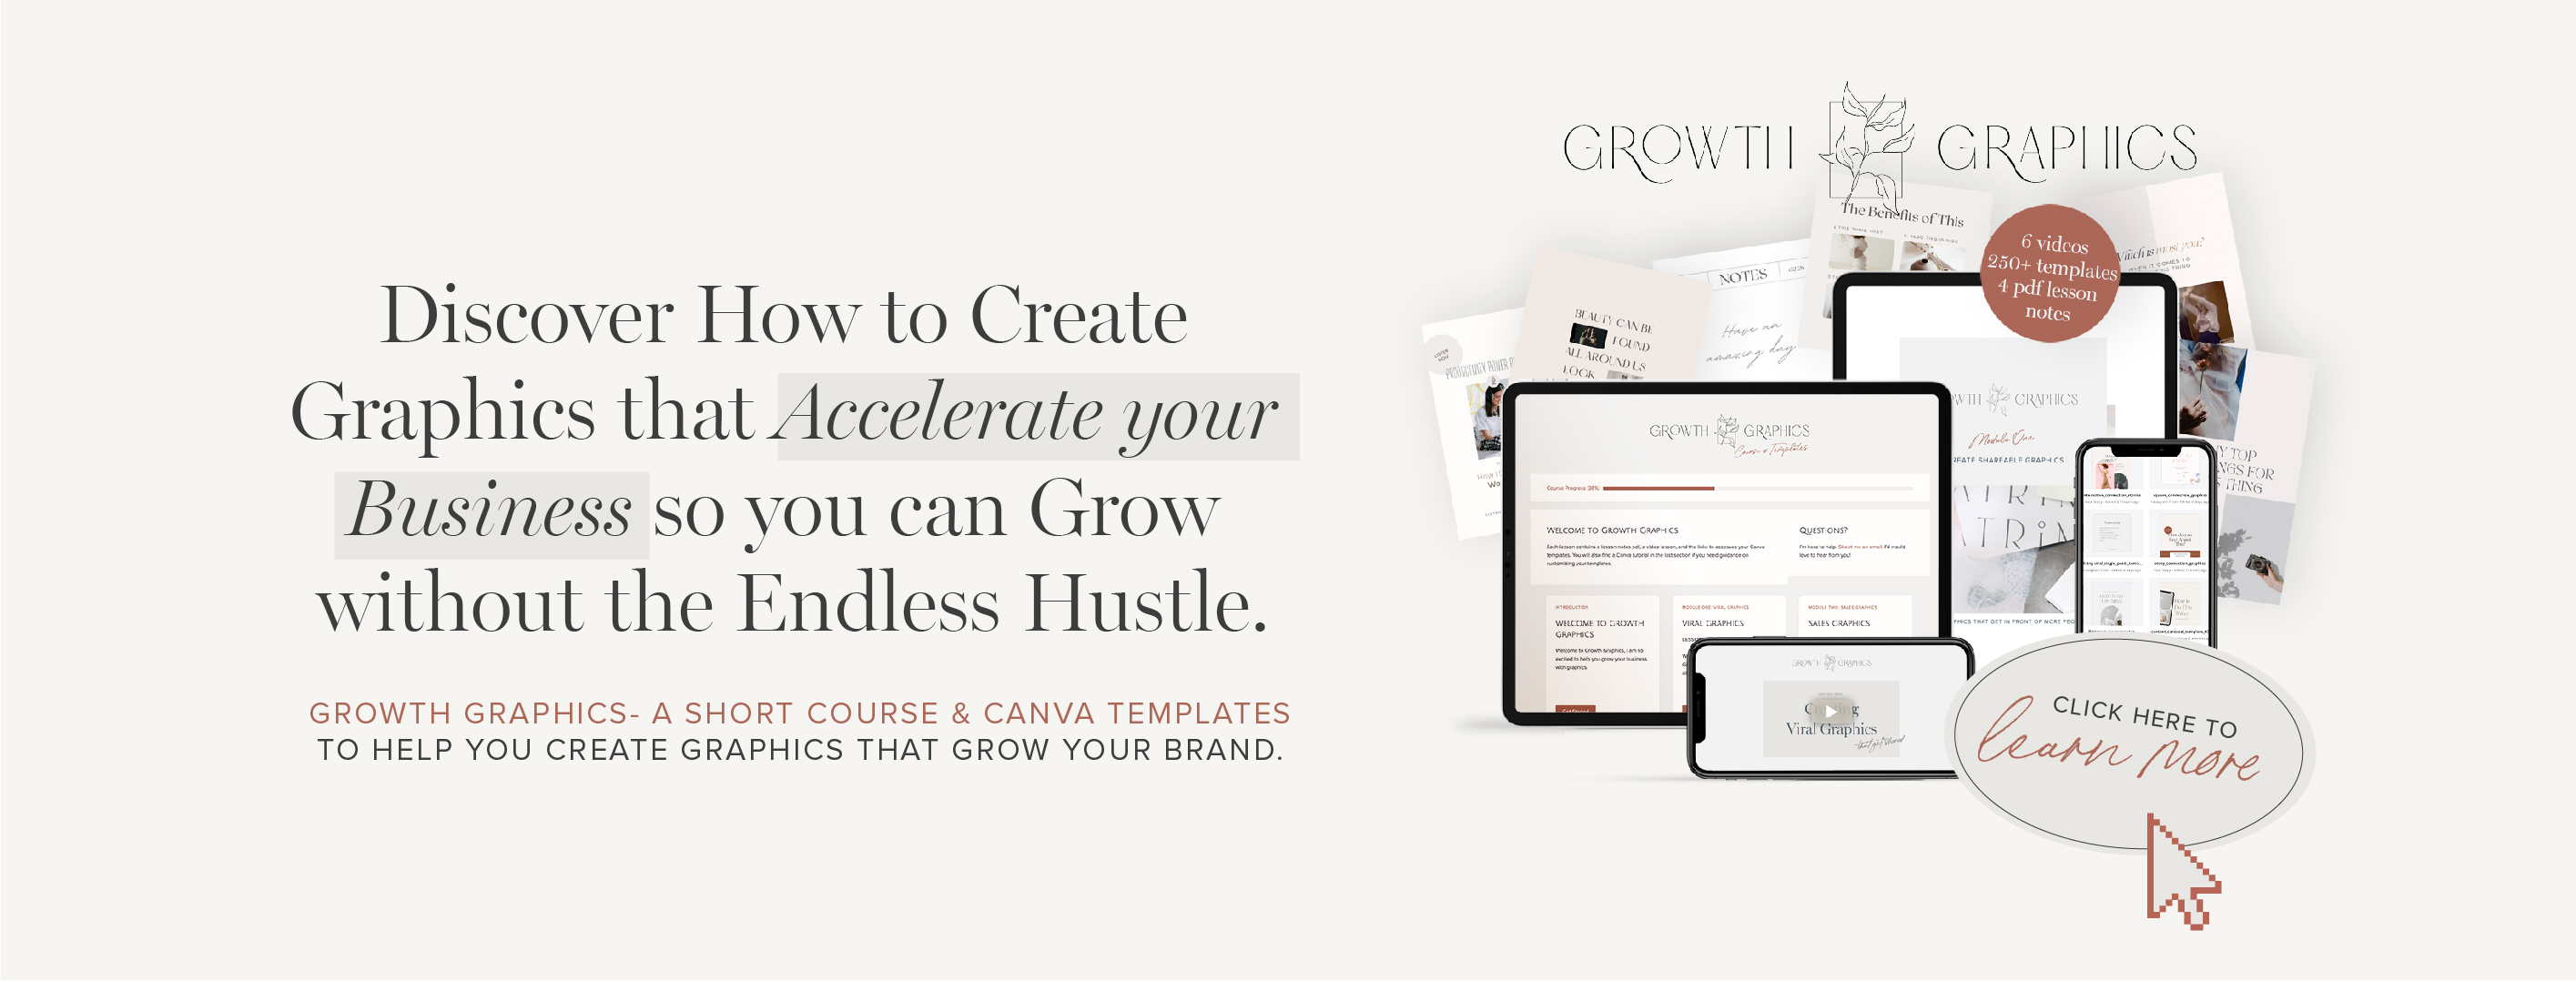 growth graphics course